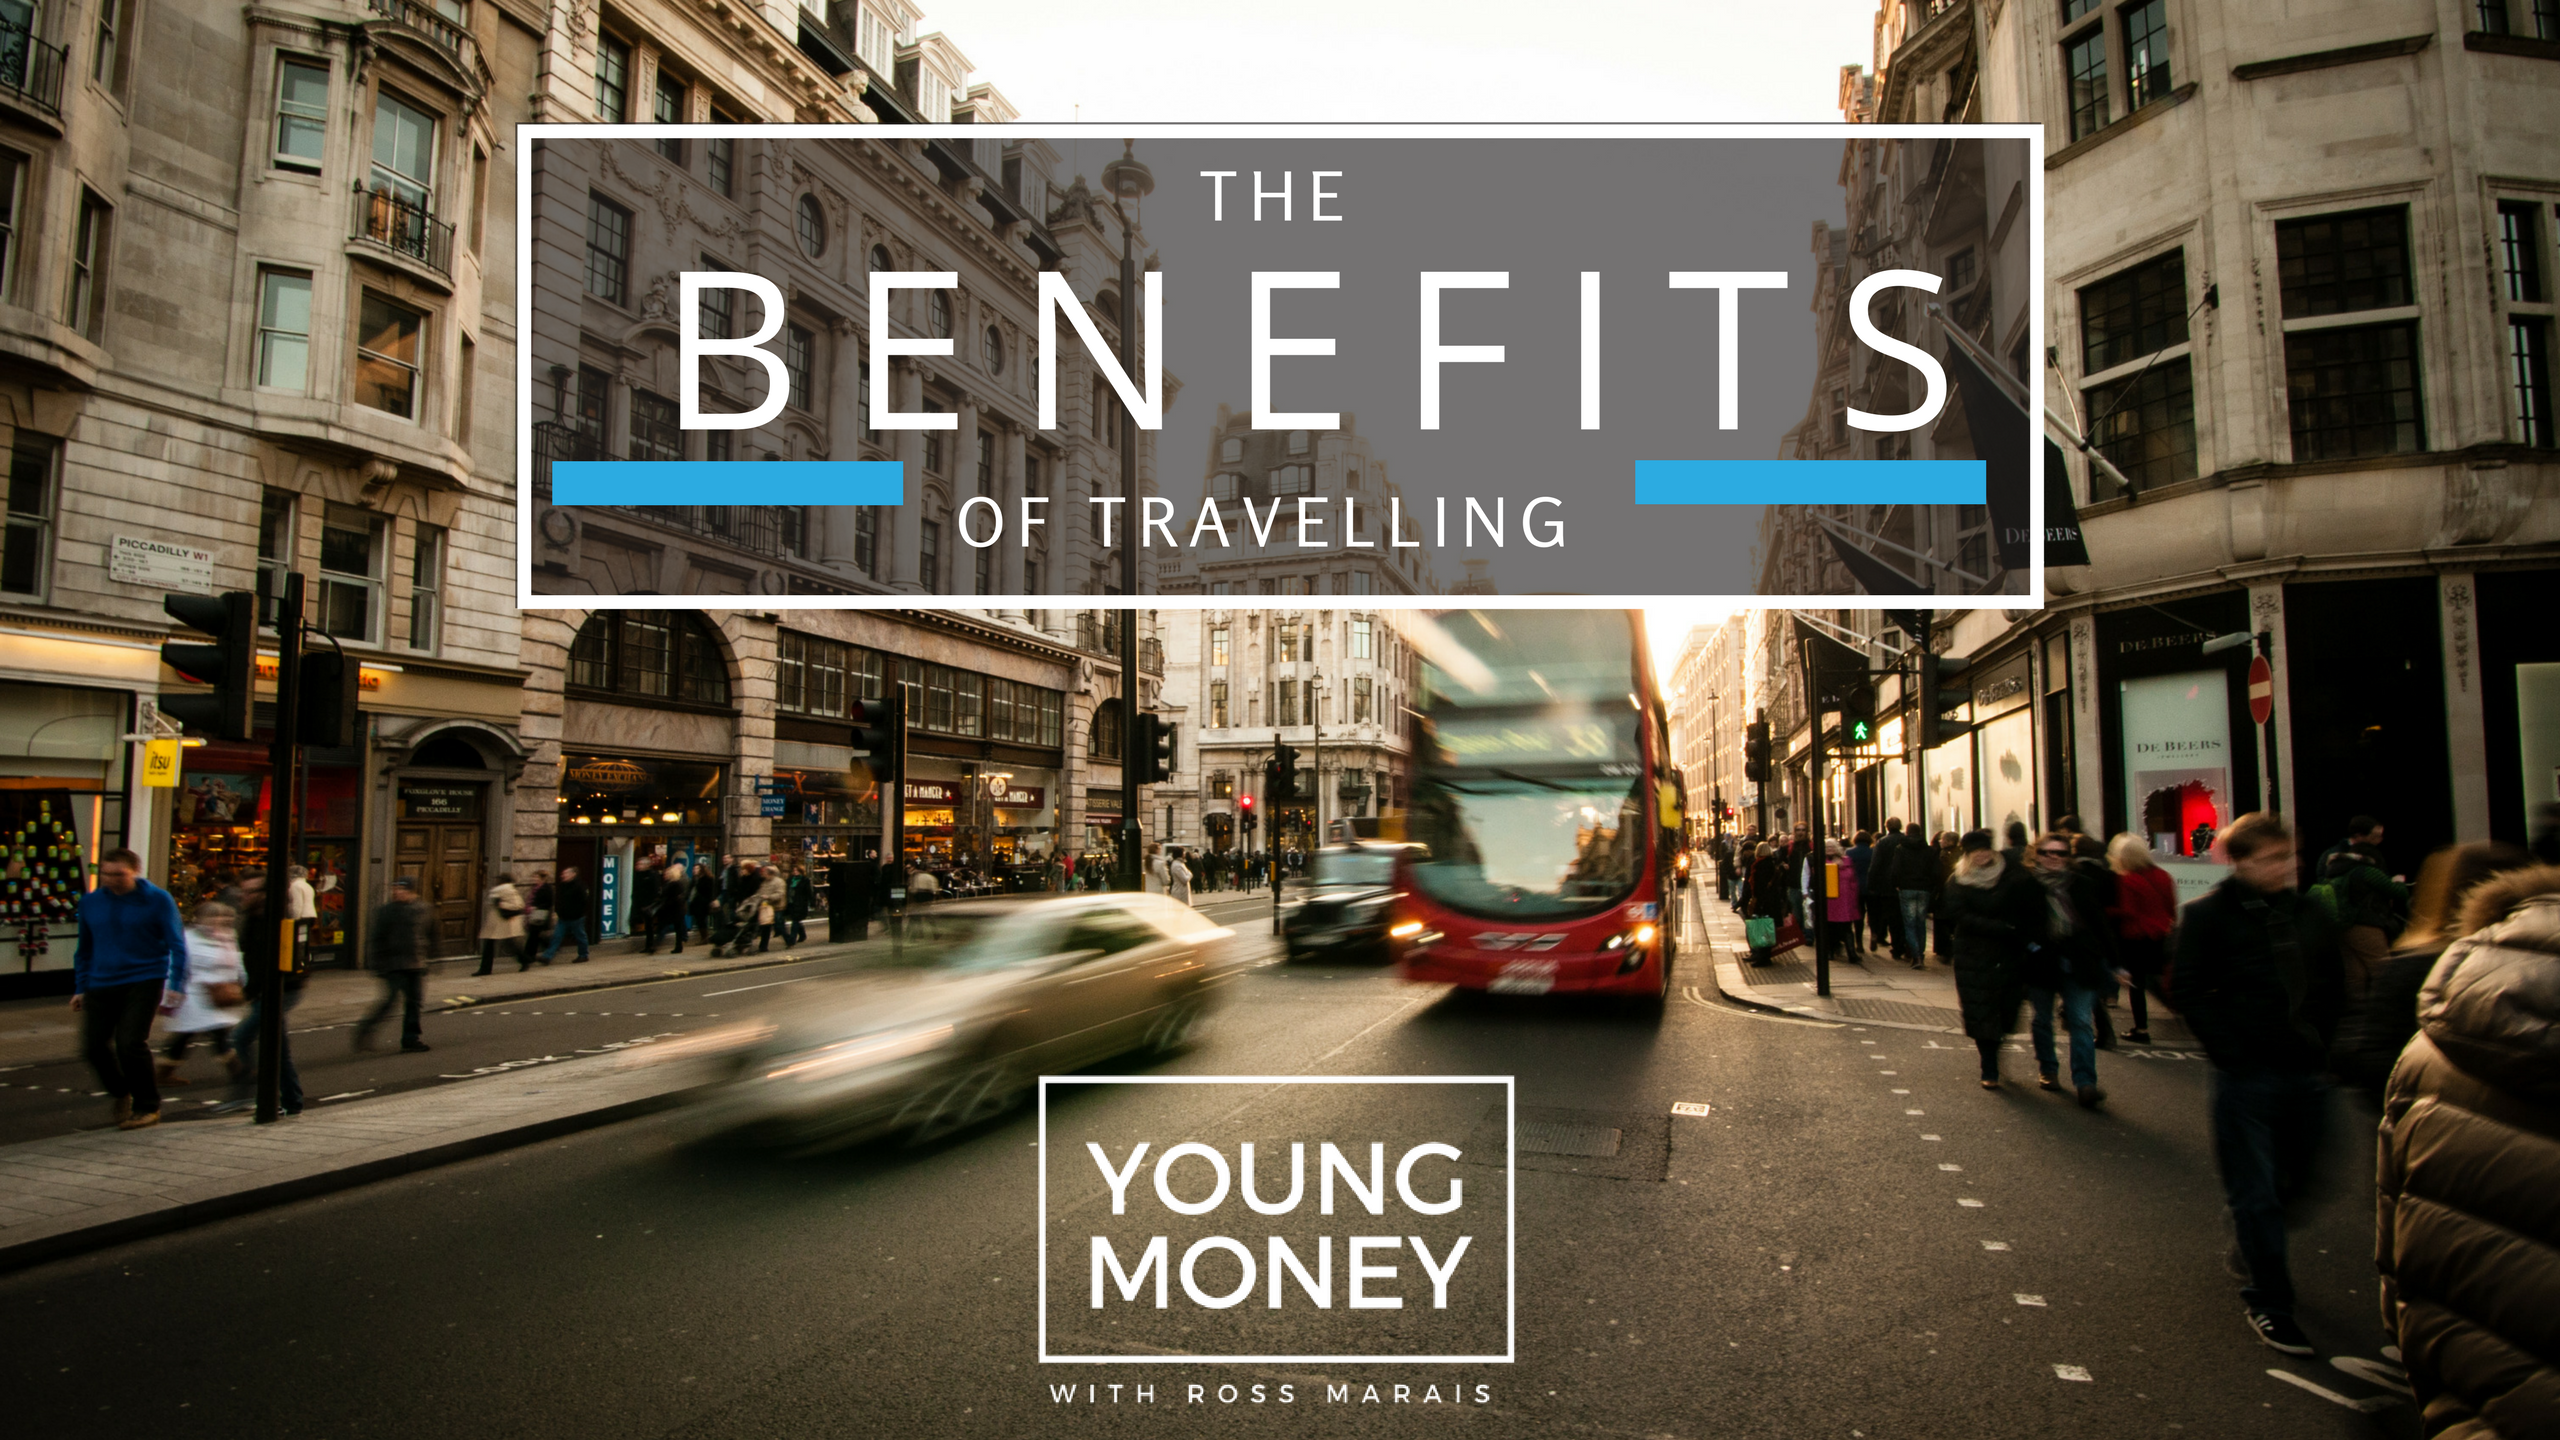 The Benefits Of Travelling I Am A Big Fan Of Traveling So I By Ross Marais Medium